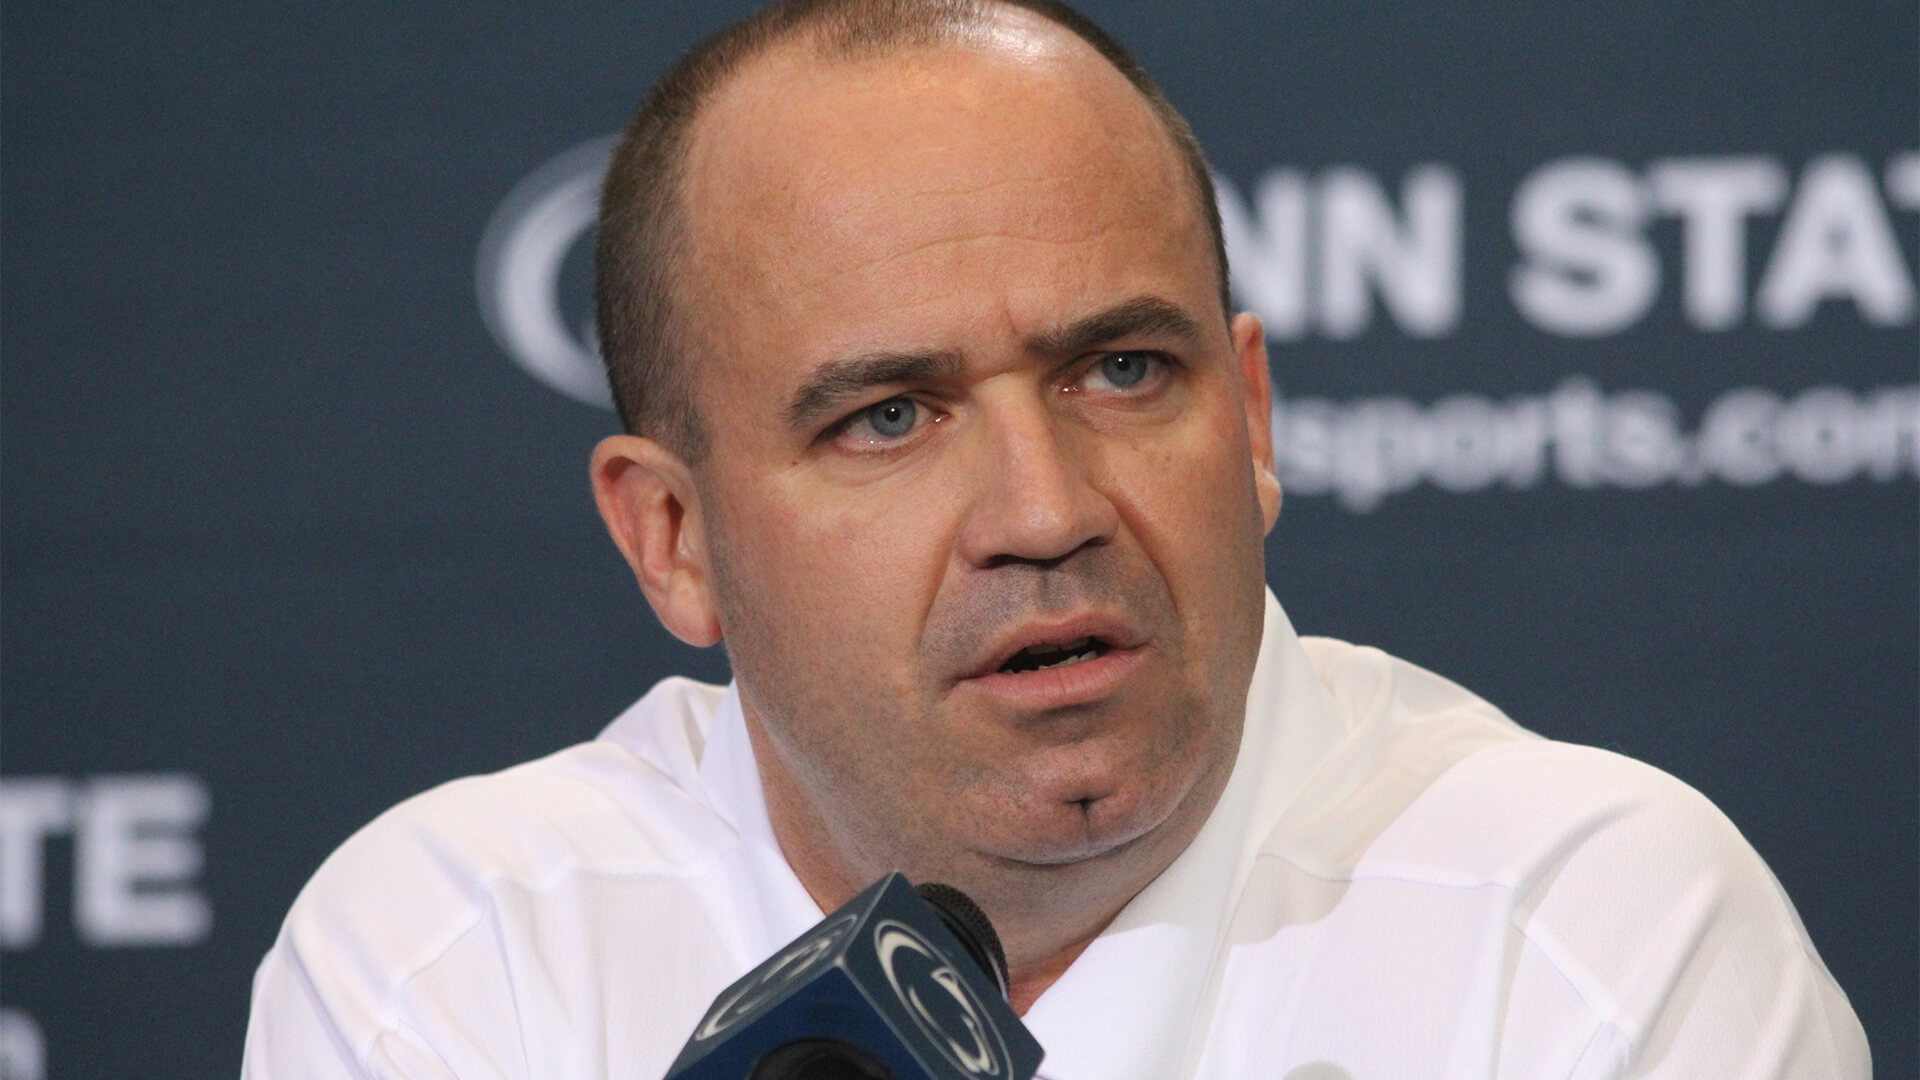 Bill O'Brien Houston Texans'tan Kovuldu! | Korumalı Futbol Türkiye